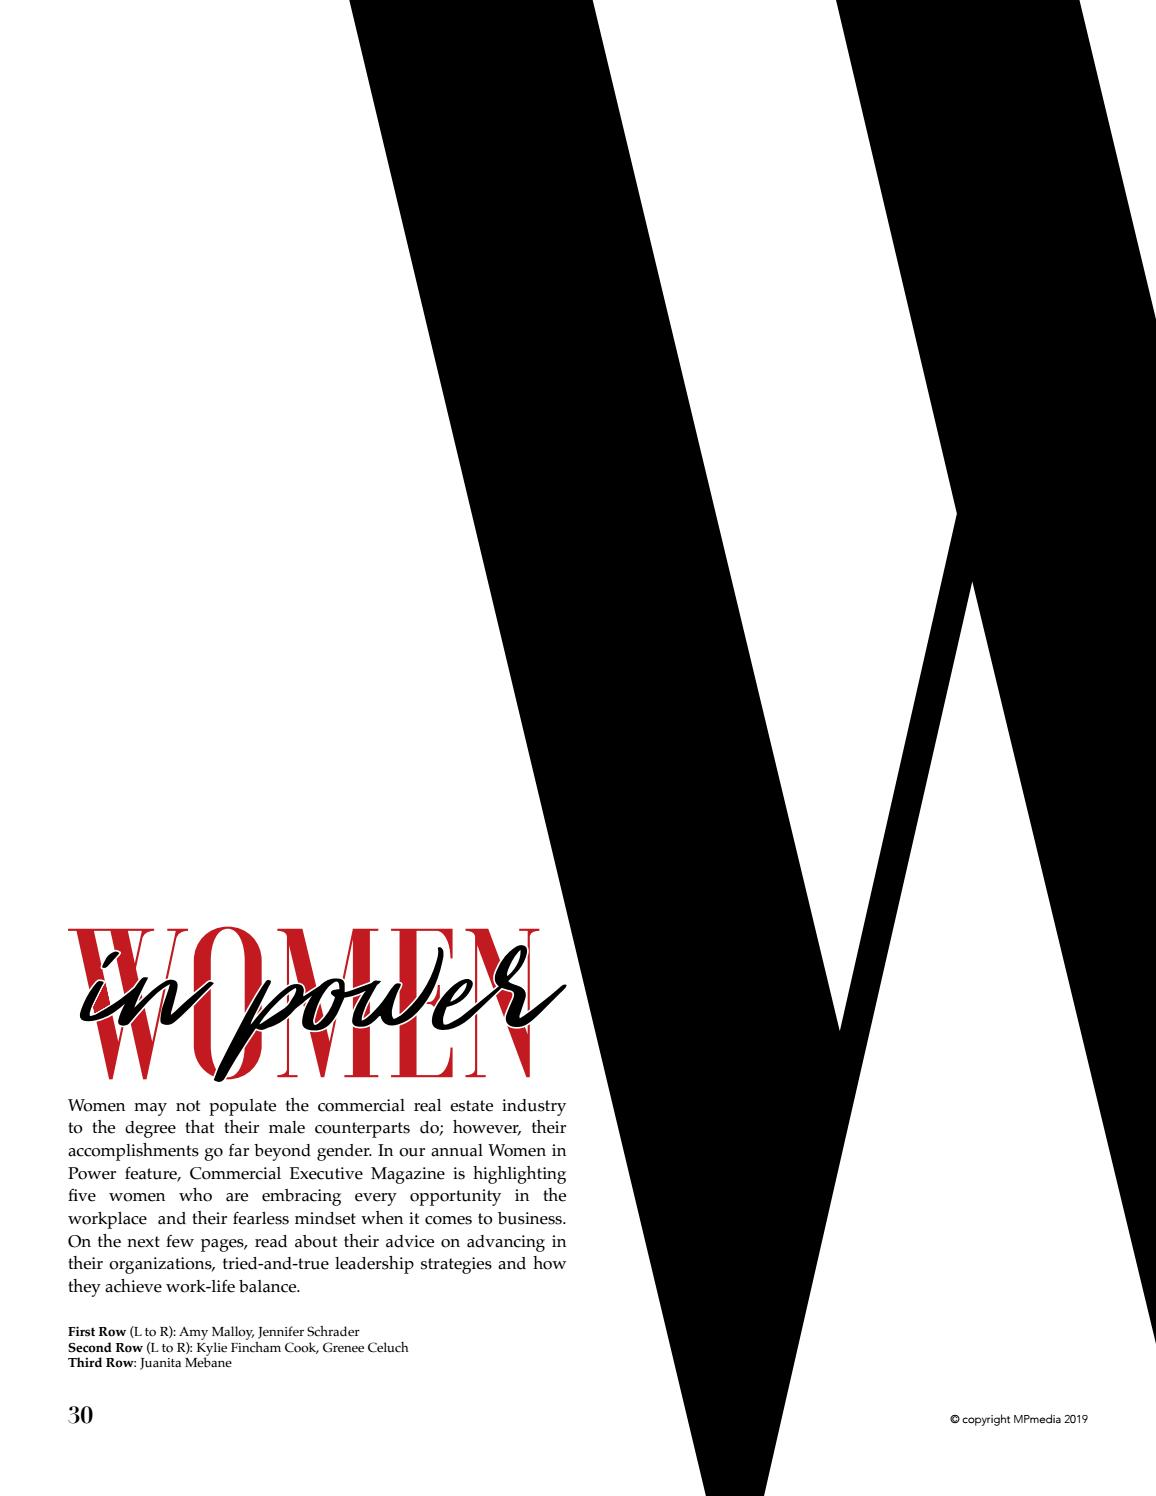 Executive Magazine's 2019 Women in Power feature